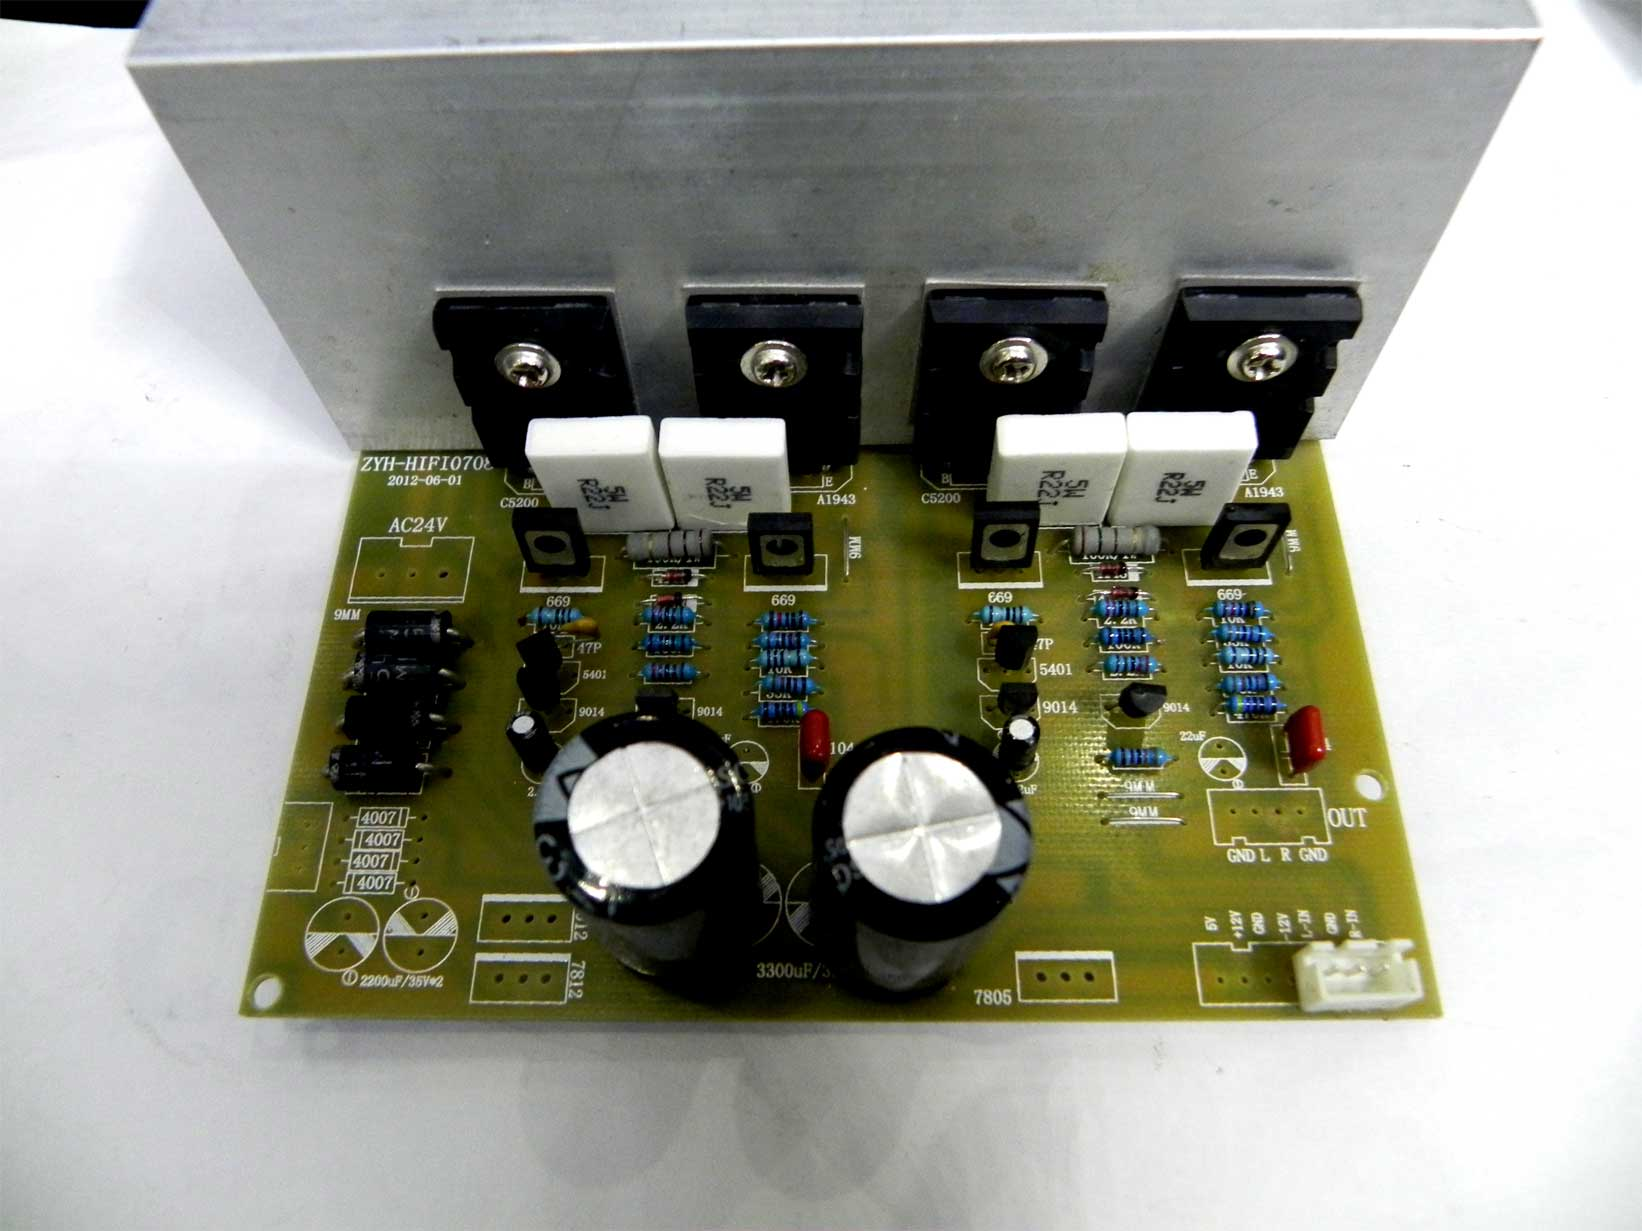 150w Lm3886 Power Amplifier Usd 1895 New Design 2 0hifi2sc5200 To 2sa1943 Stereo Classic Board